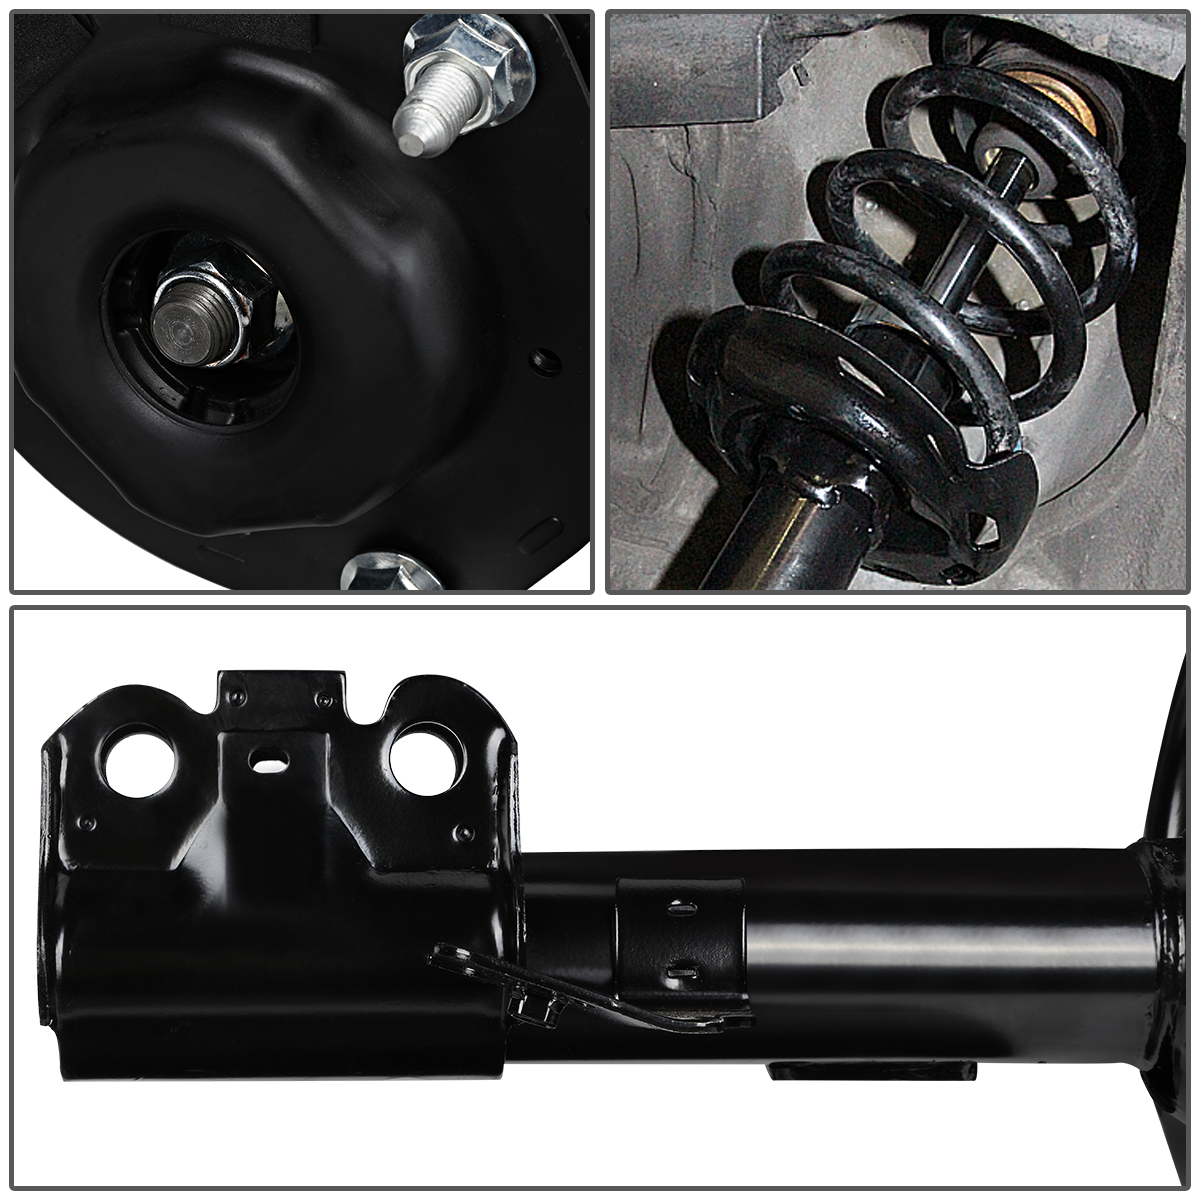 FOR 04-06 TOYOTA CAMRY //LEXUS ES330 REAR RIGHT STRUT COIL SPRING SHOCK ASSEMBLY